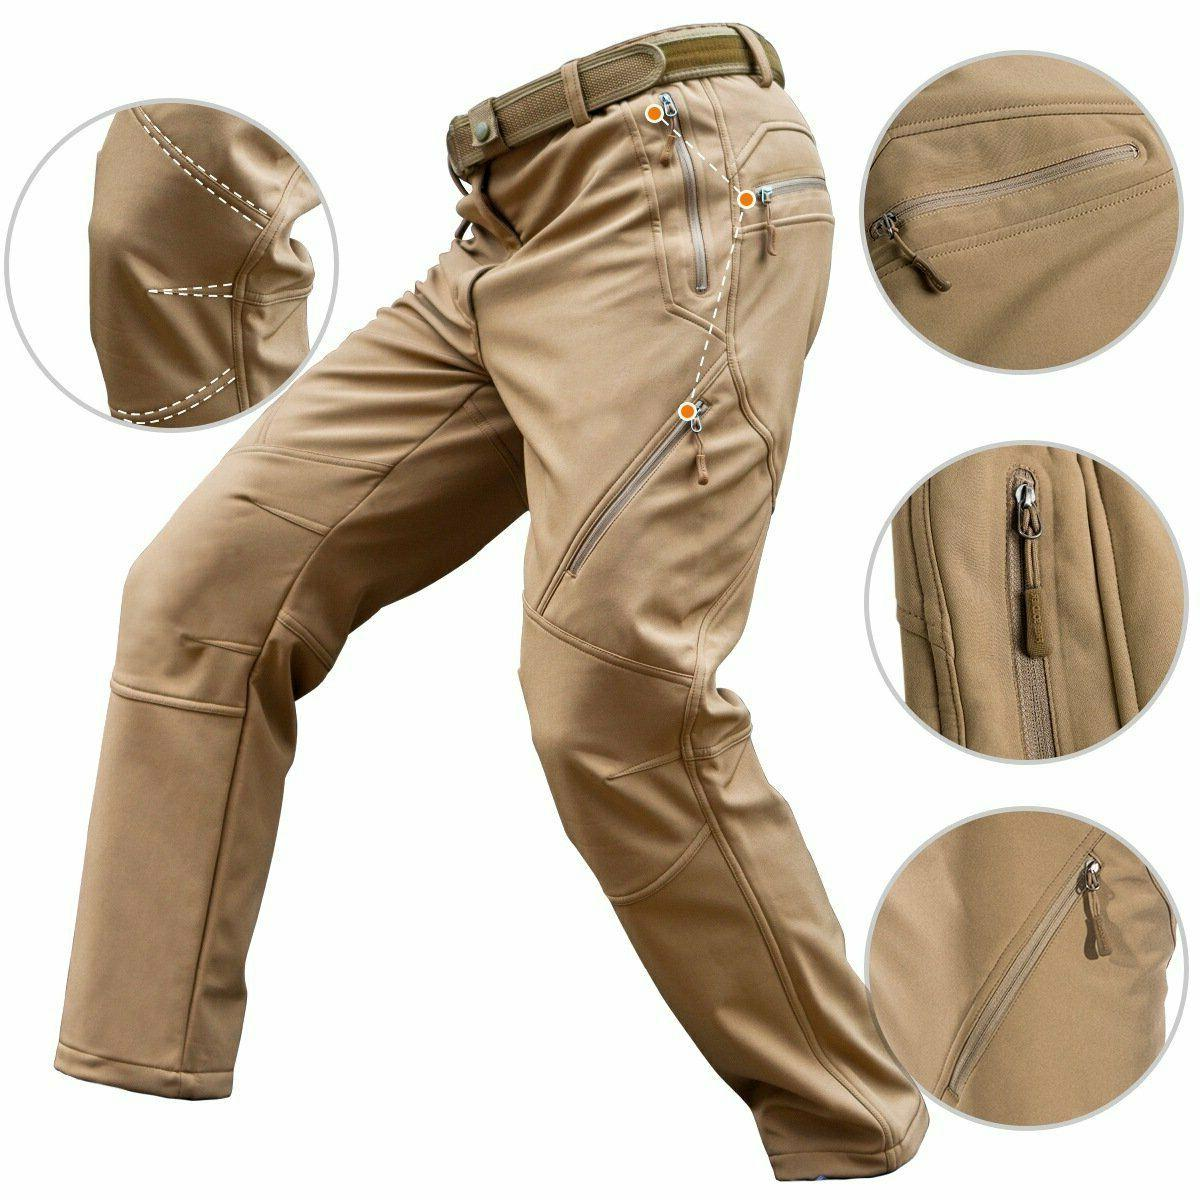 Free Soldier Men's Outdoor Fleece Softshell Snow Hiking Pants 32/32